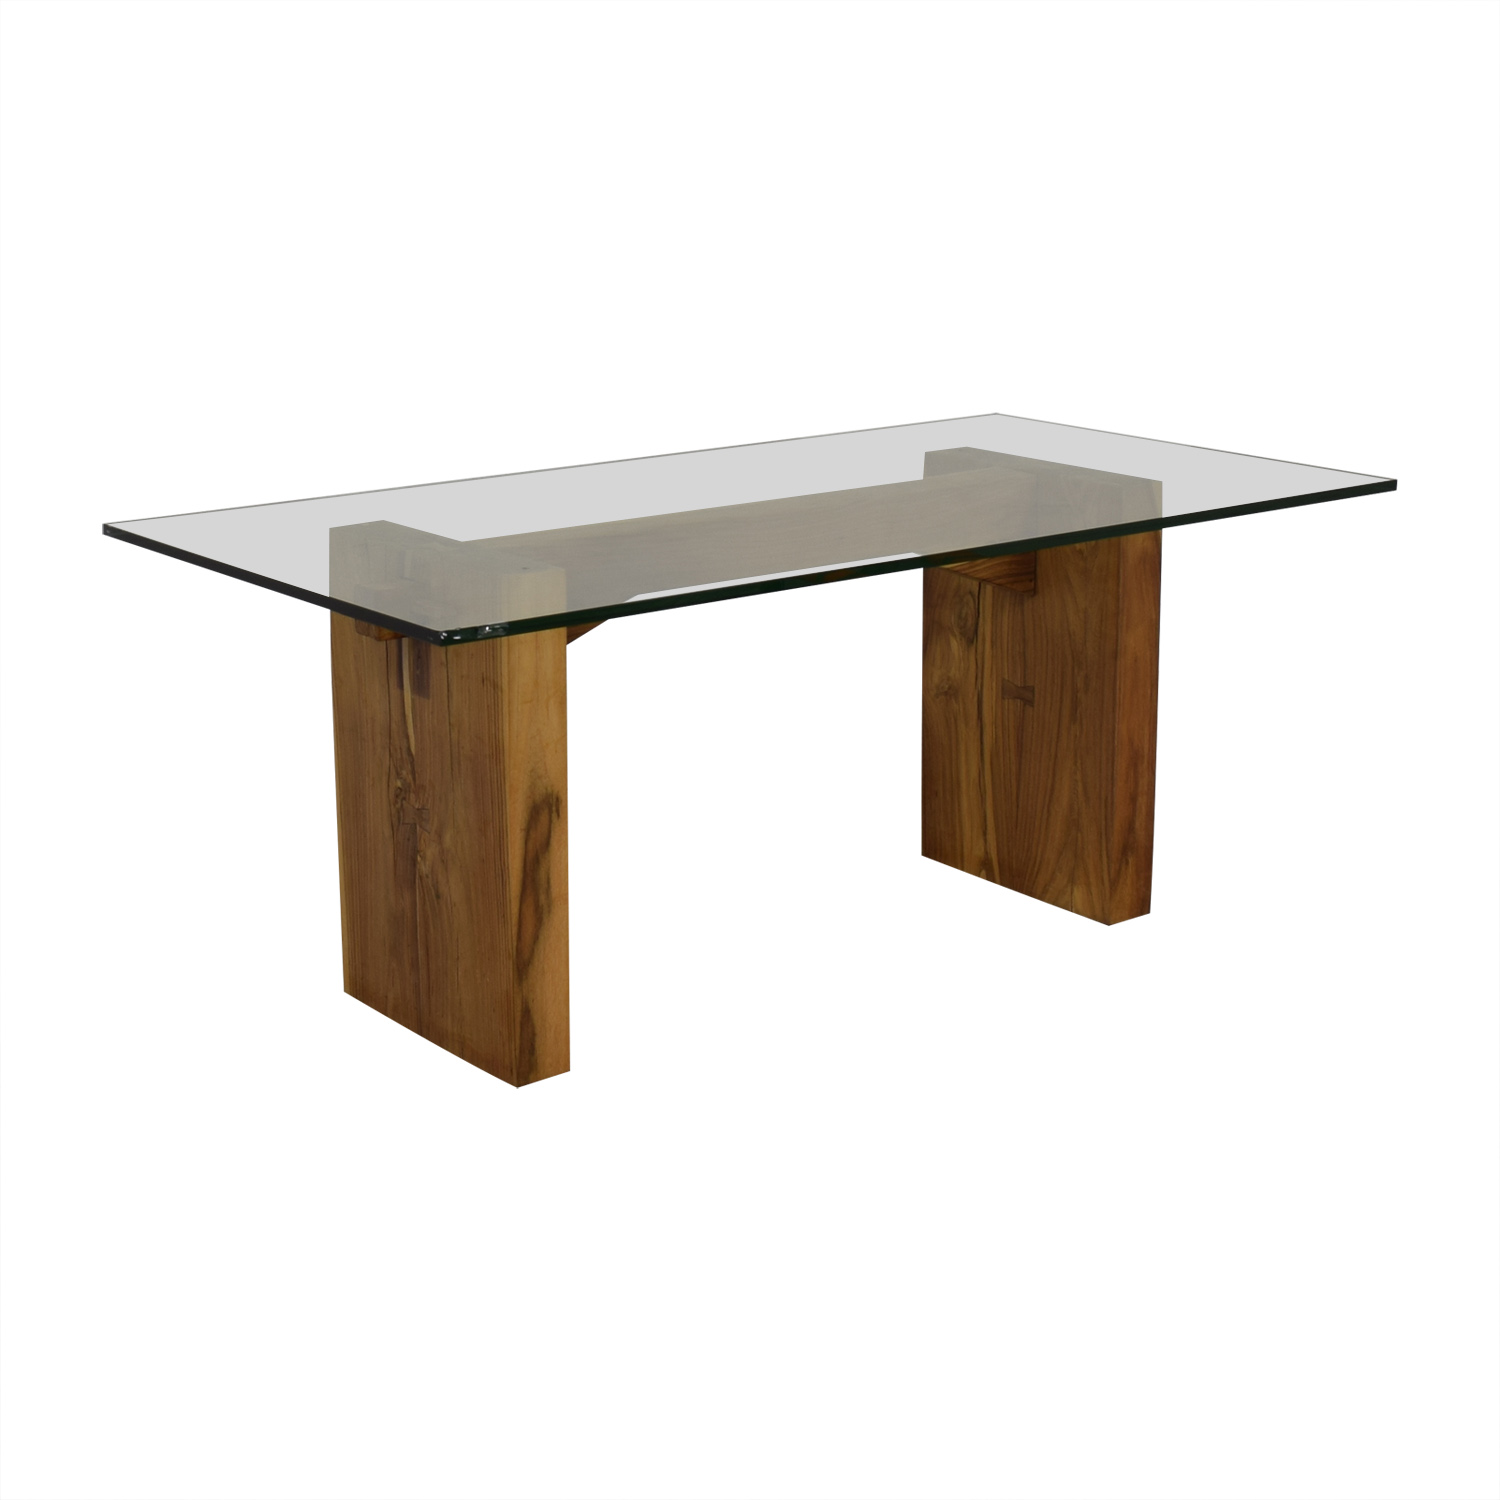 From the Source From the Source Glass Dining Table on sale